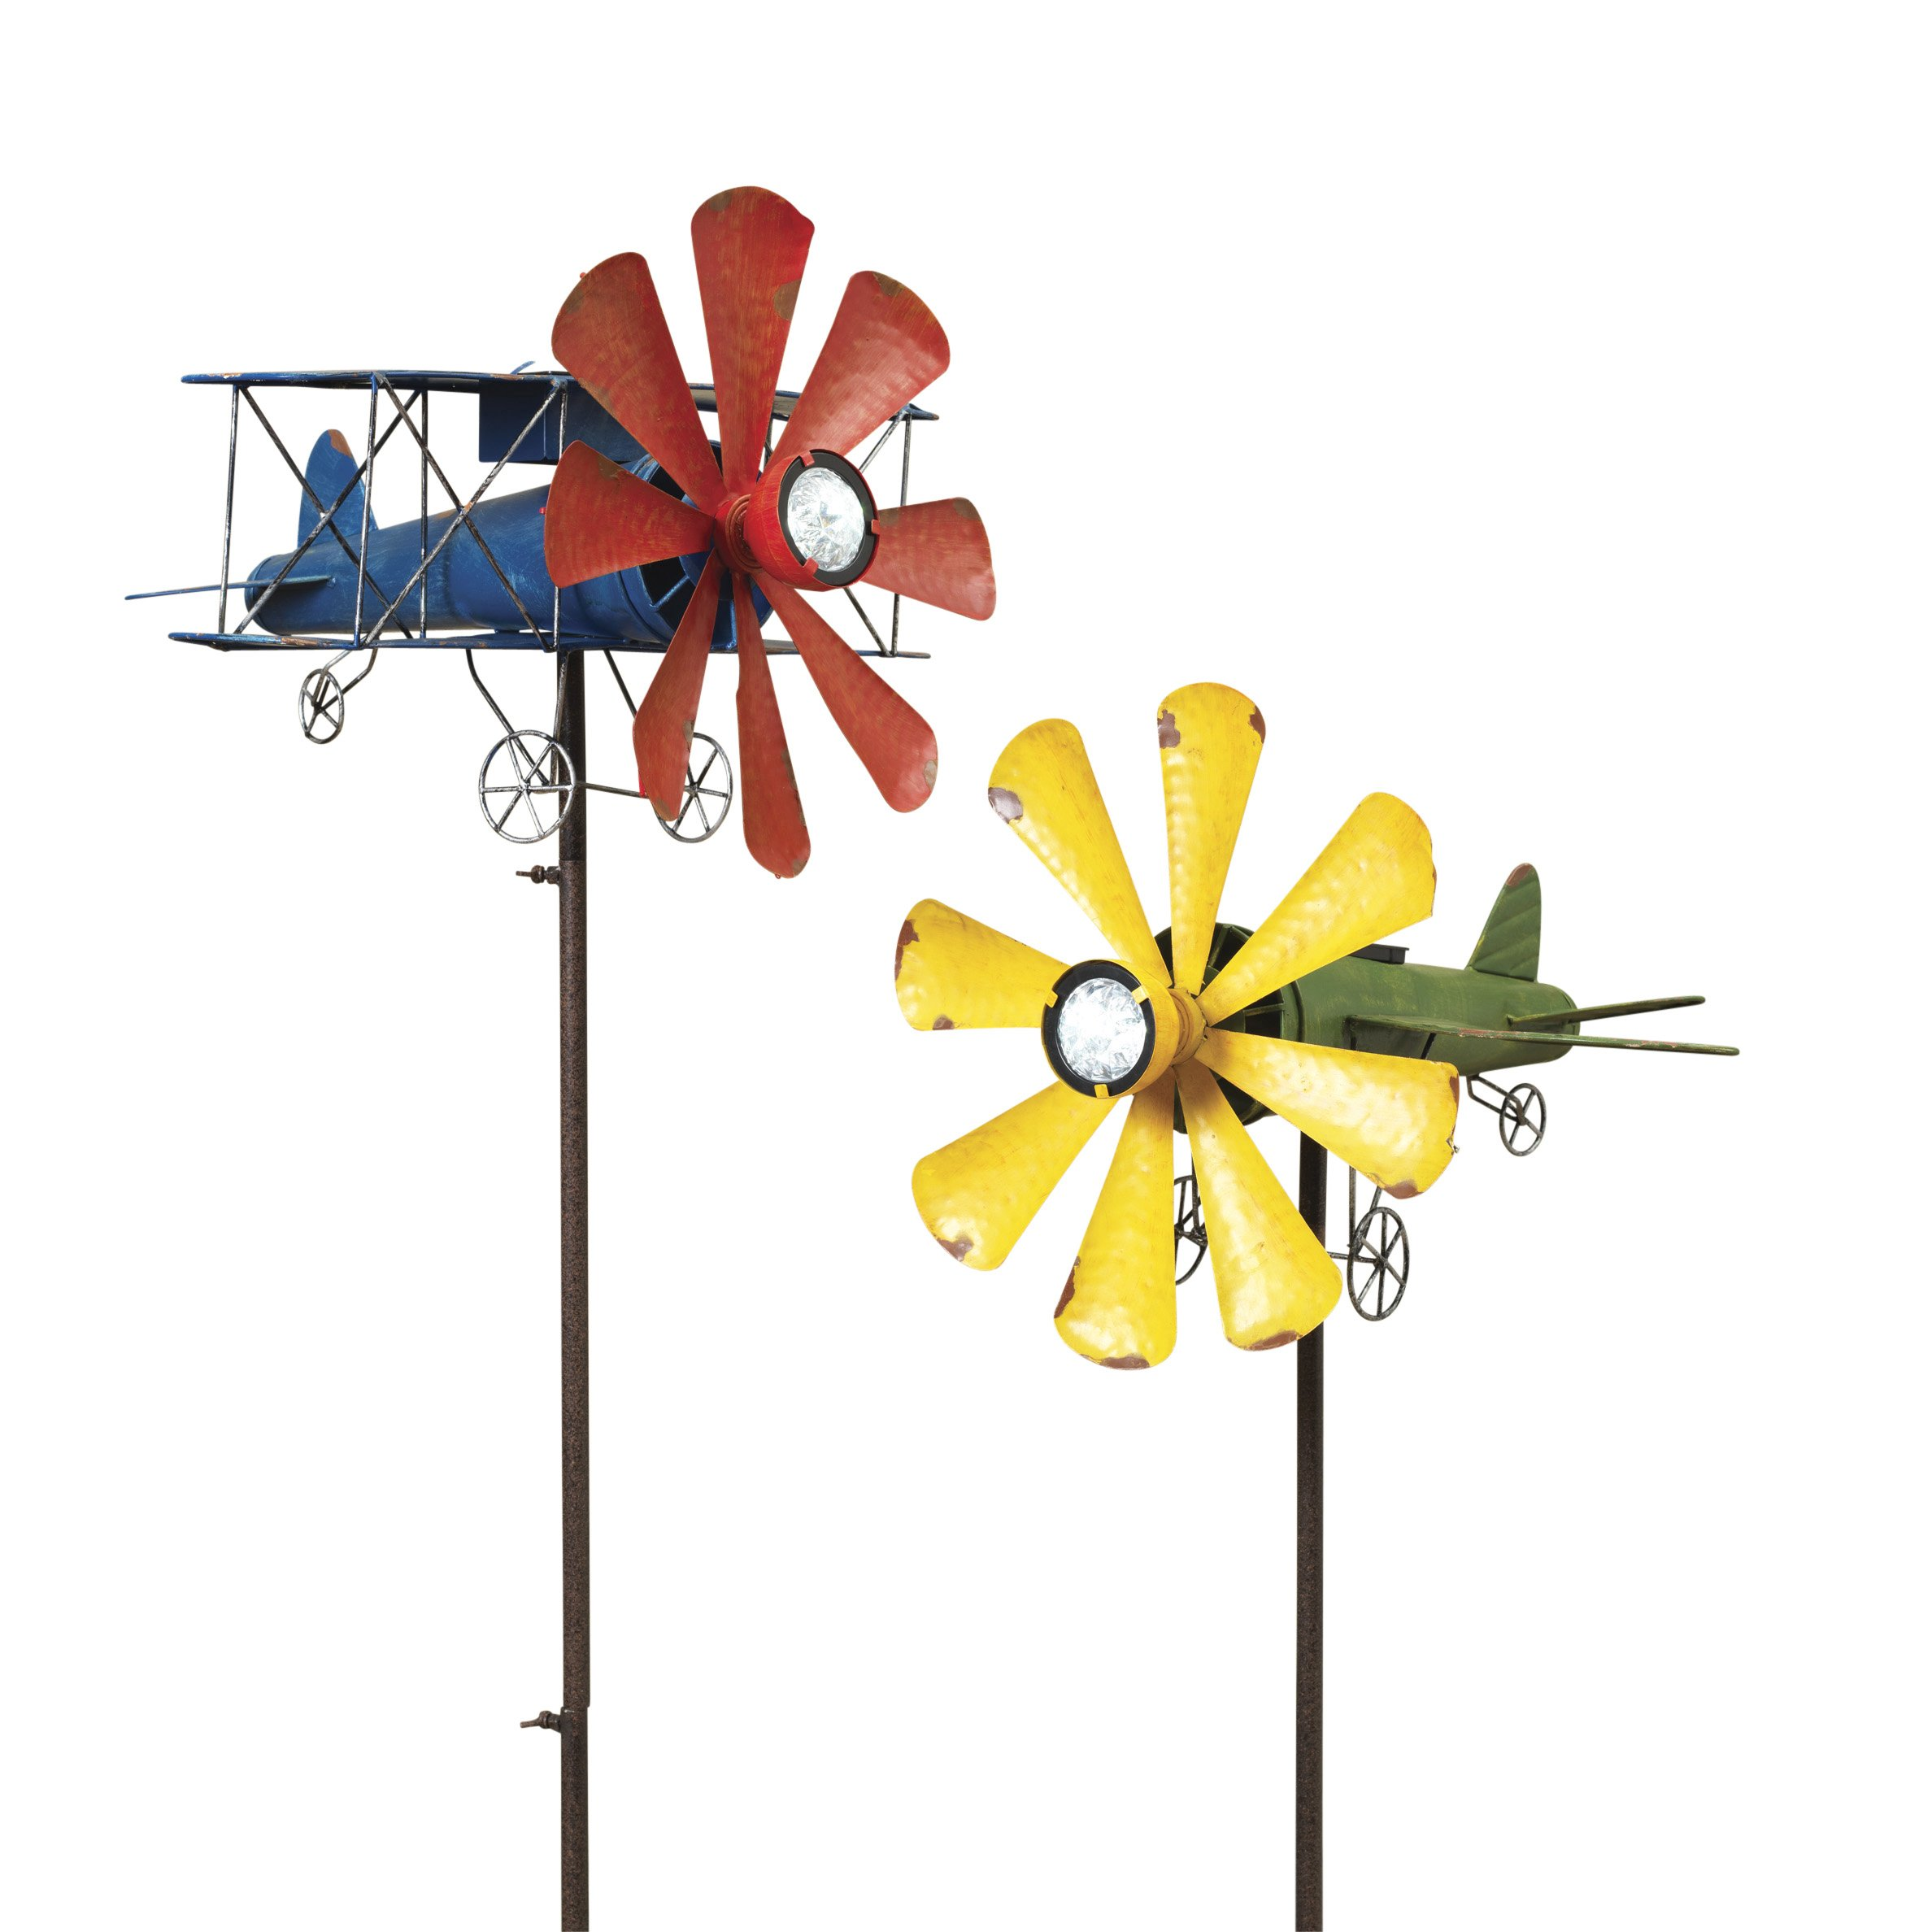 The Gerson Company Garden Accent Solar Powered Airplane Wind Spinner Pack of Two, 2 Piece